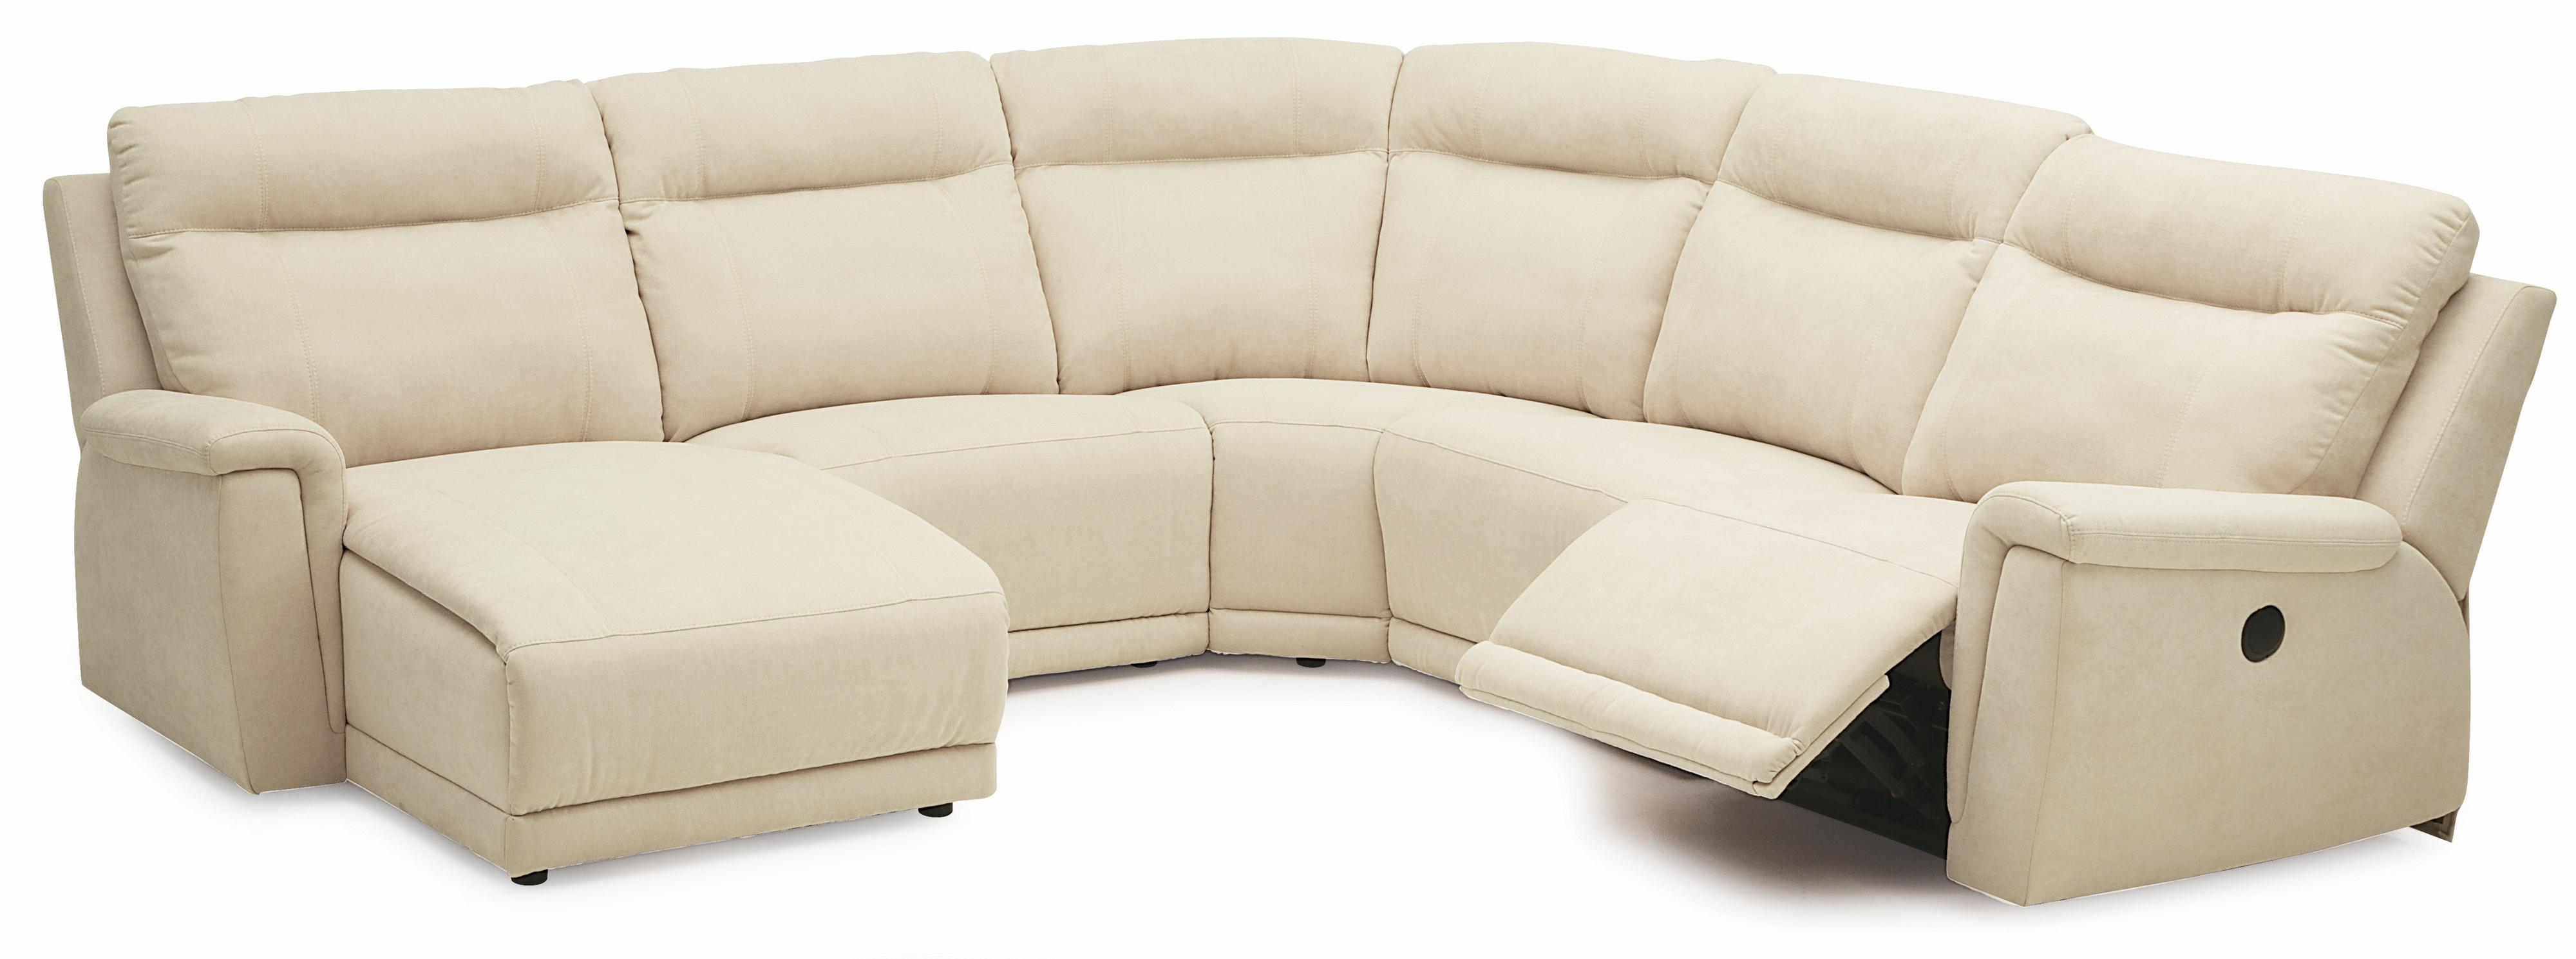 Westpoint LHF Sectional w/ Chaise by Palliser at Upper Room Home Furnishings